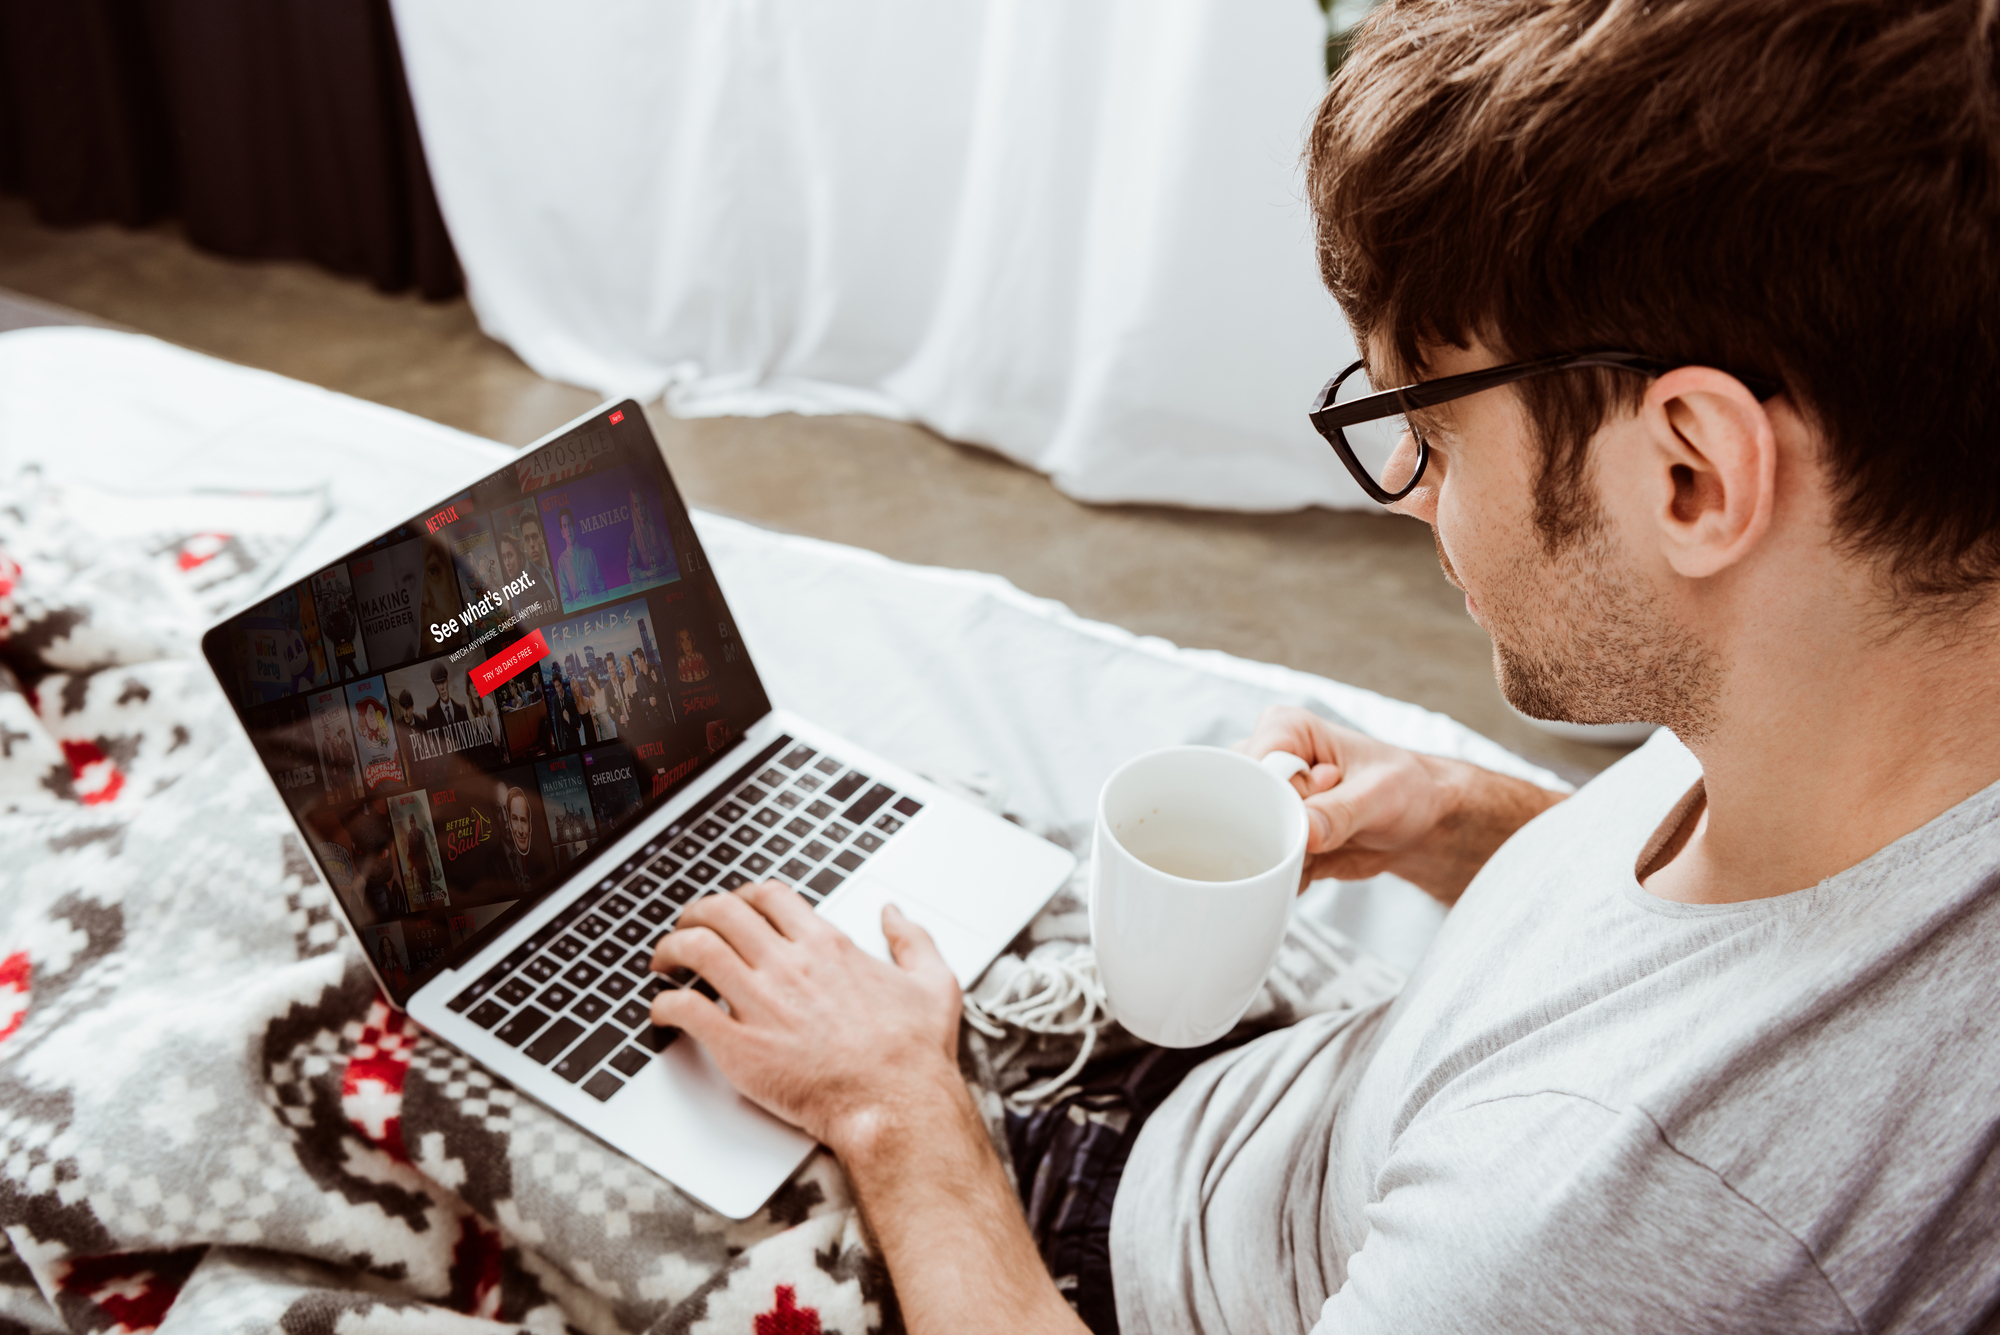 A person watches Netflix on their laptop in bed. In their right hand, they are holding a white mug.